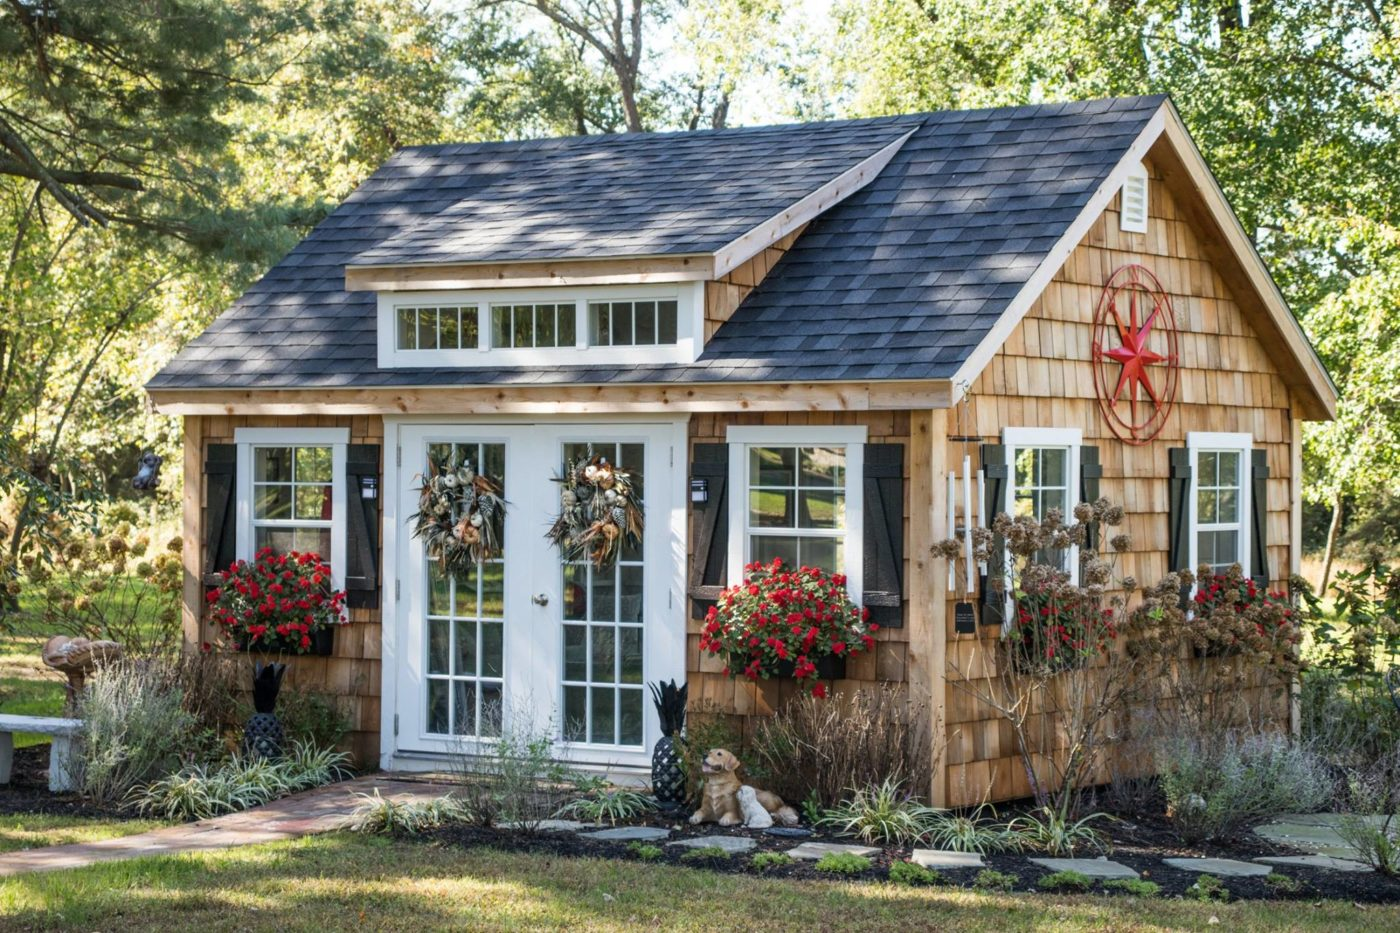 12x16 customized shed